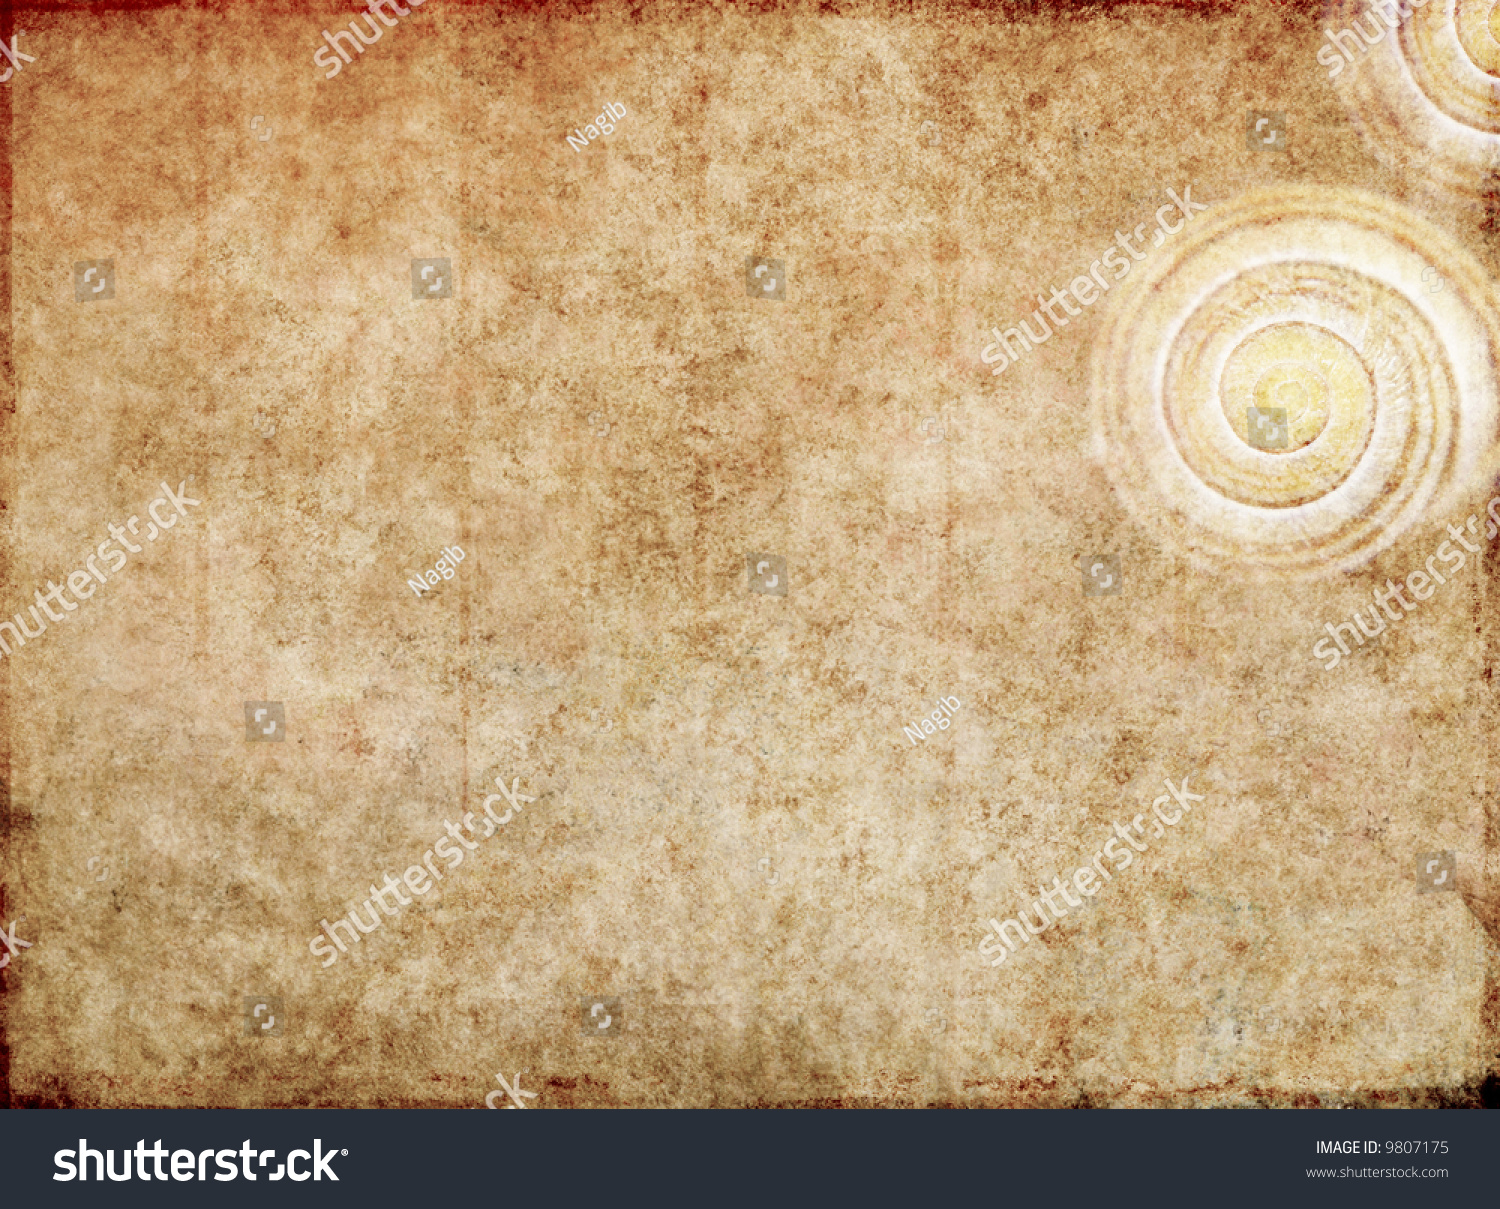 Lovely Brown Background Image With Interesting Texture ... - photo#4